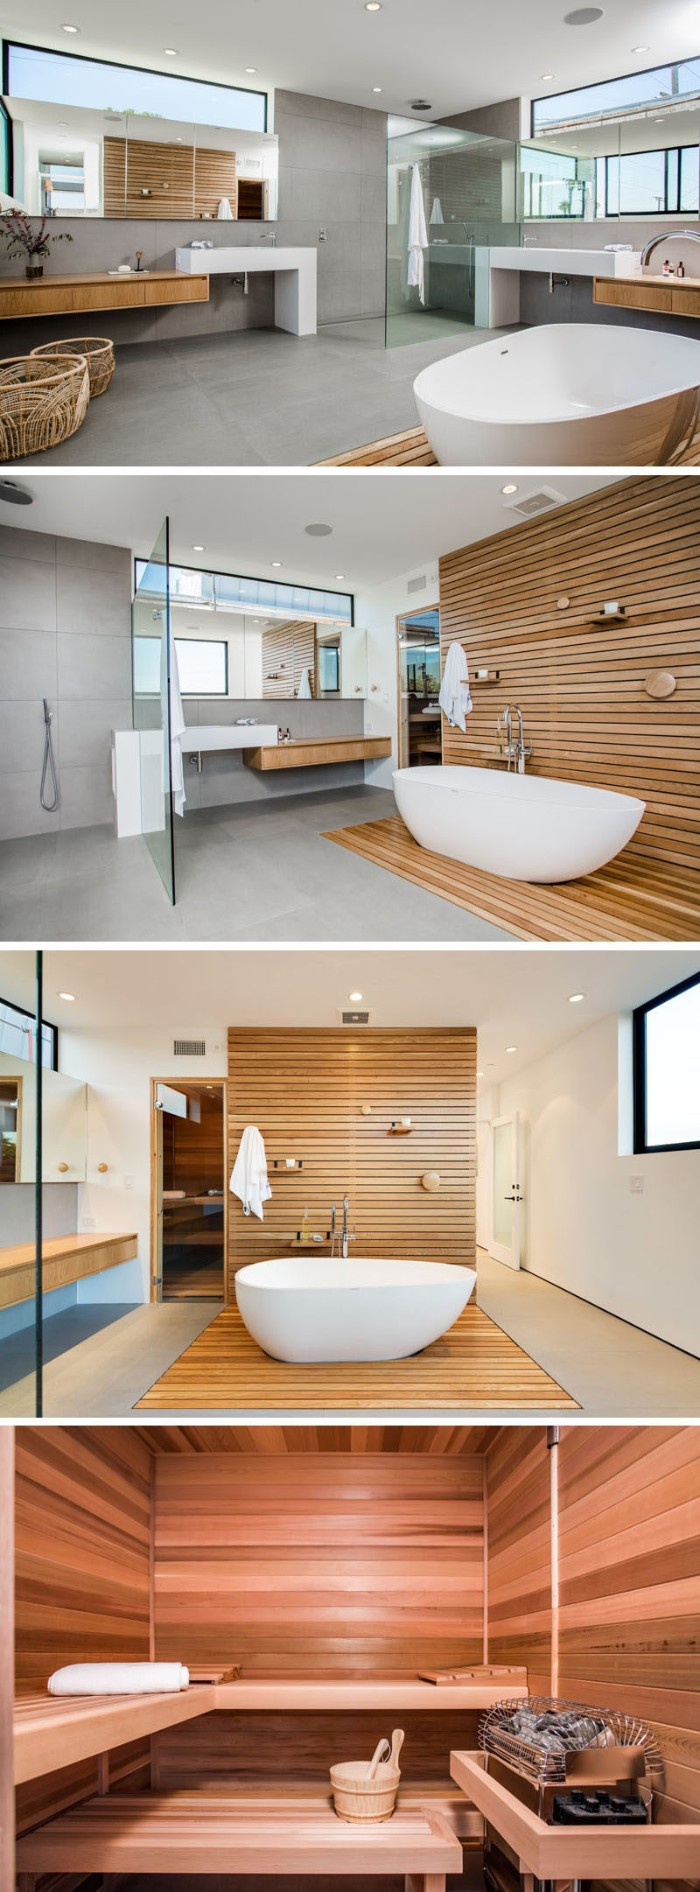 four images showing bathroom interiors, grey floor and walls, wooden details and a bathtub, a photo of a sauna, bath remodel ideas